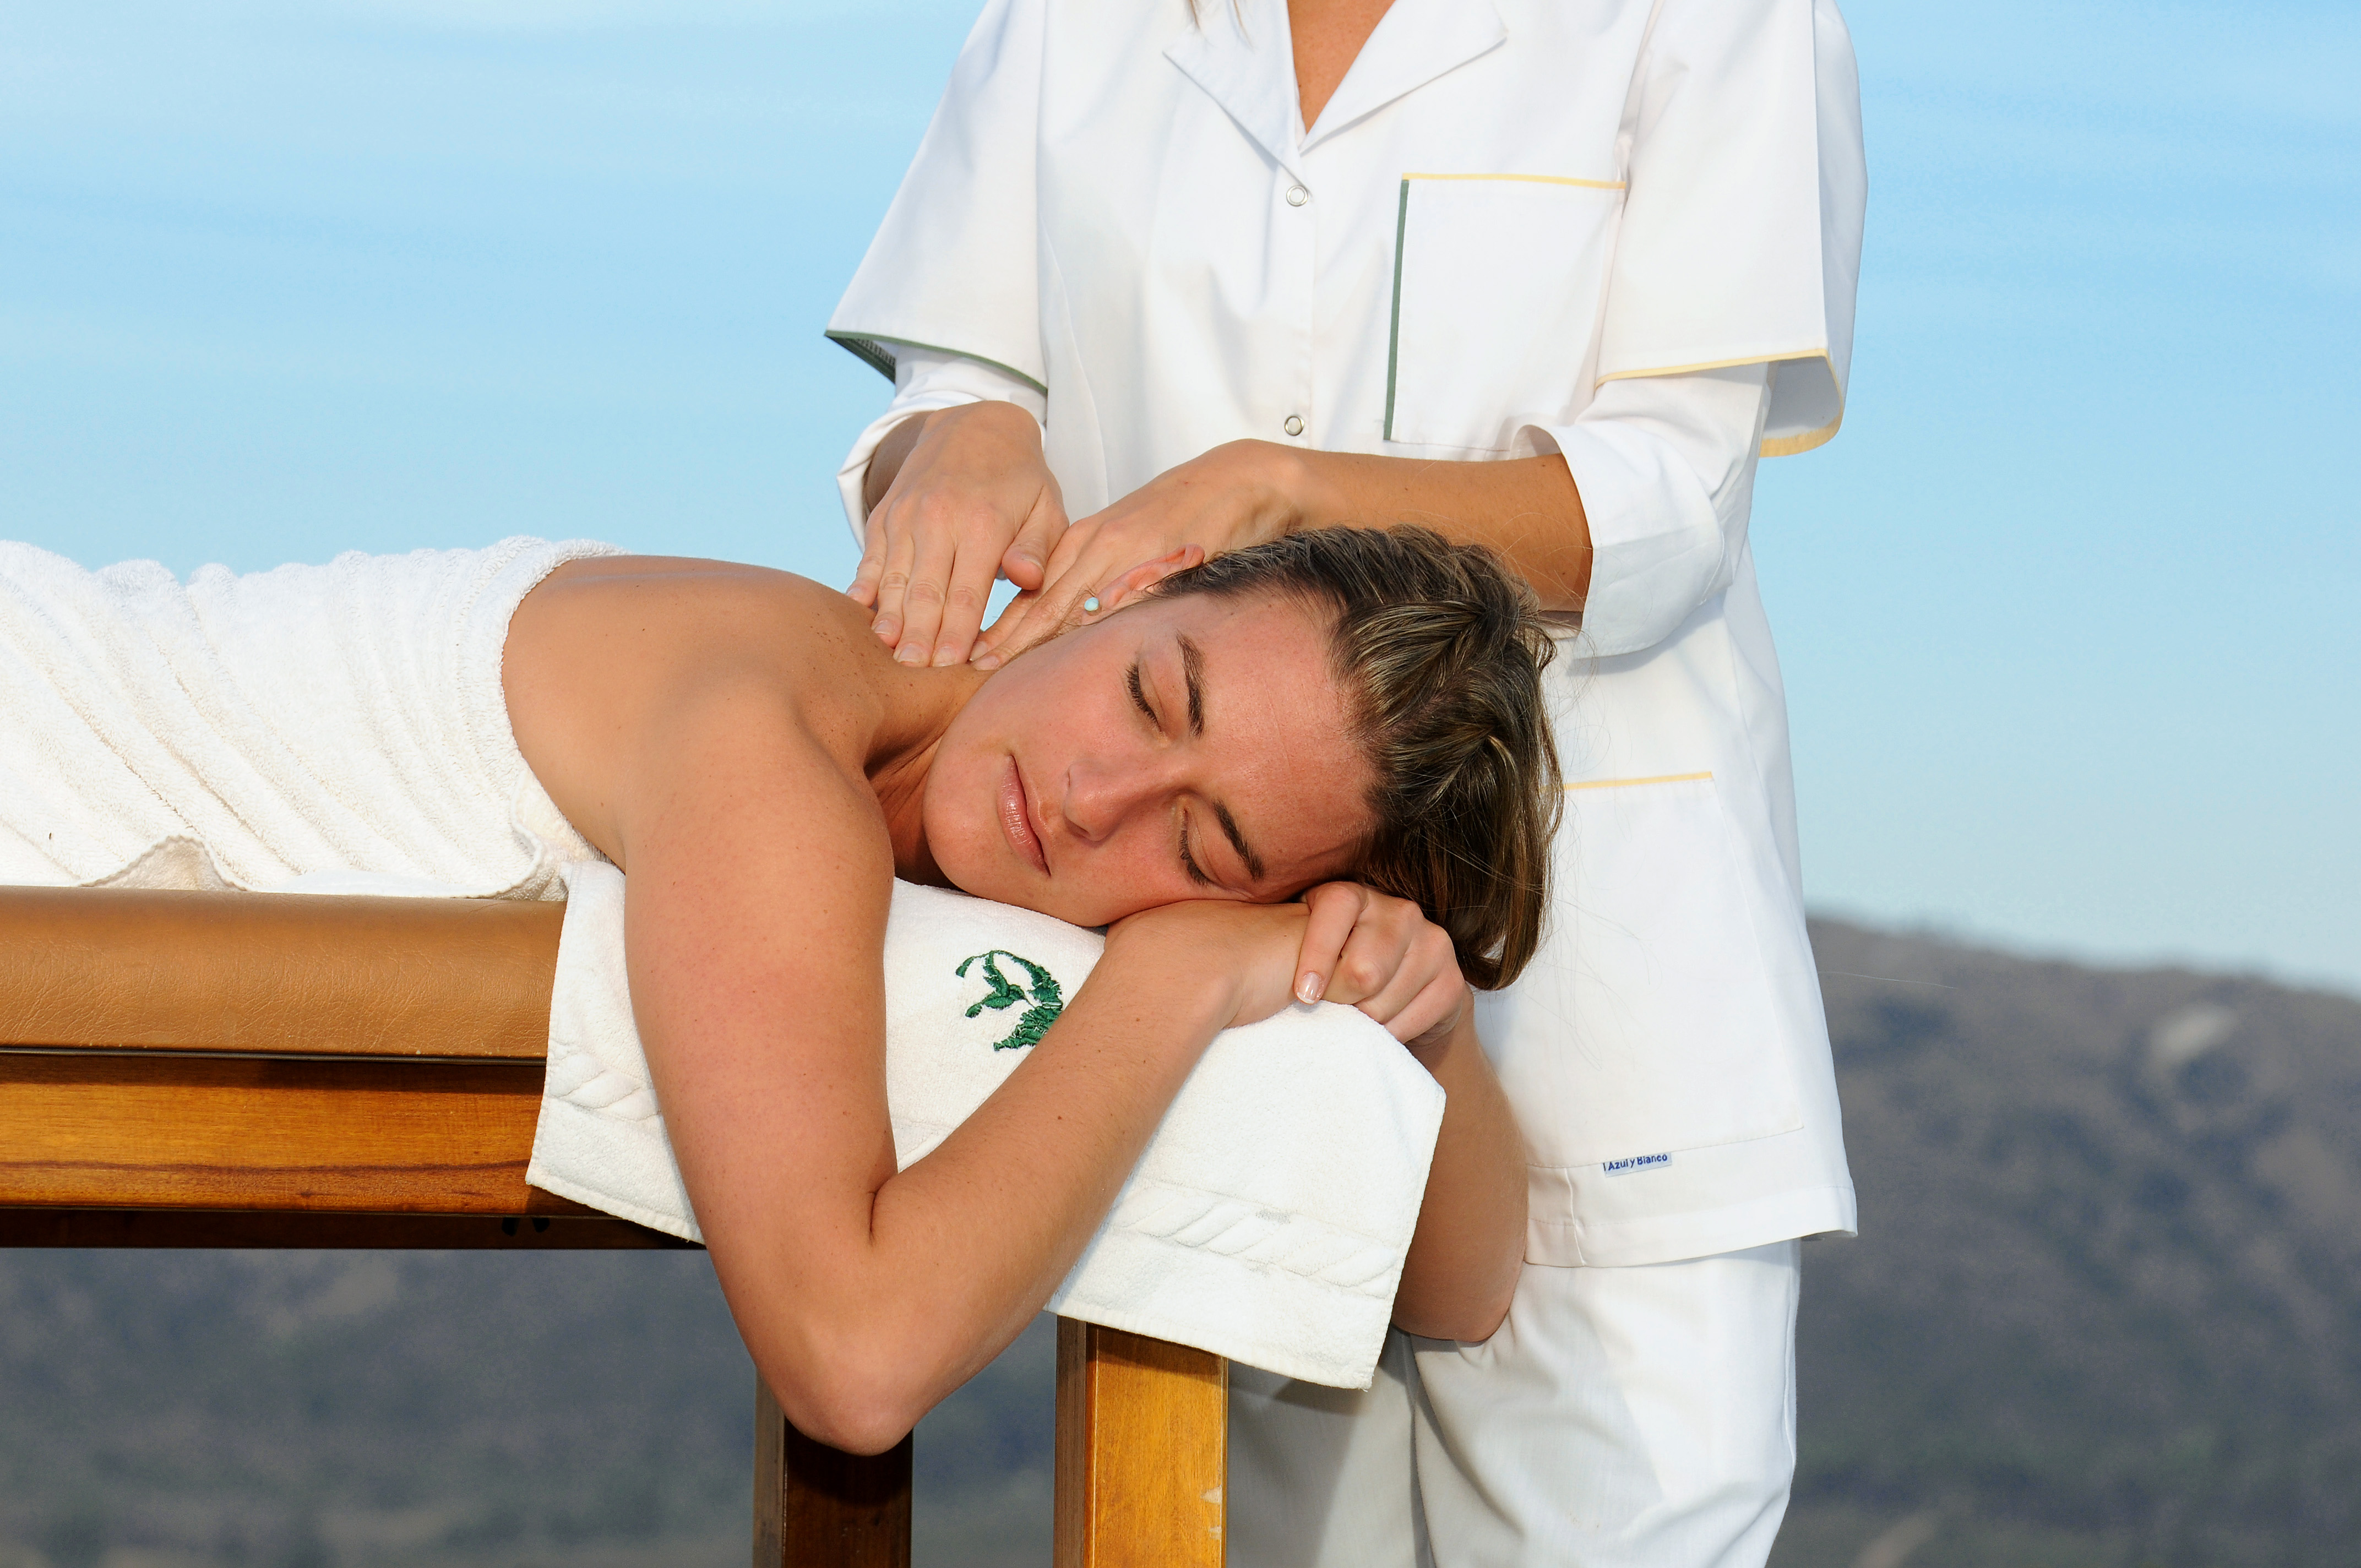 MCC: A massage that touches the soul